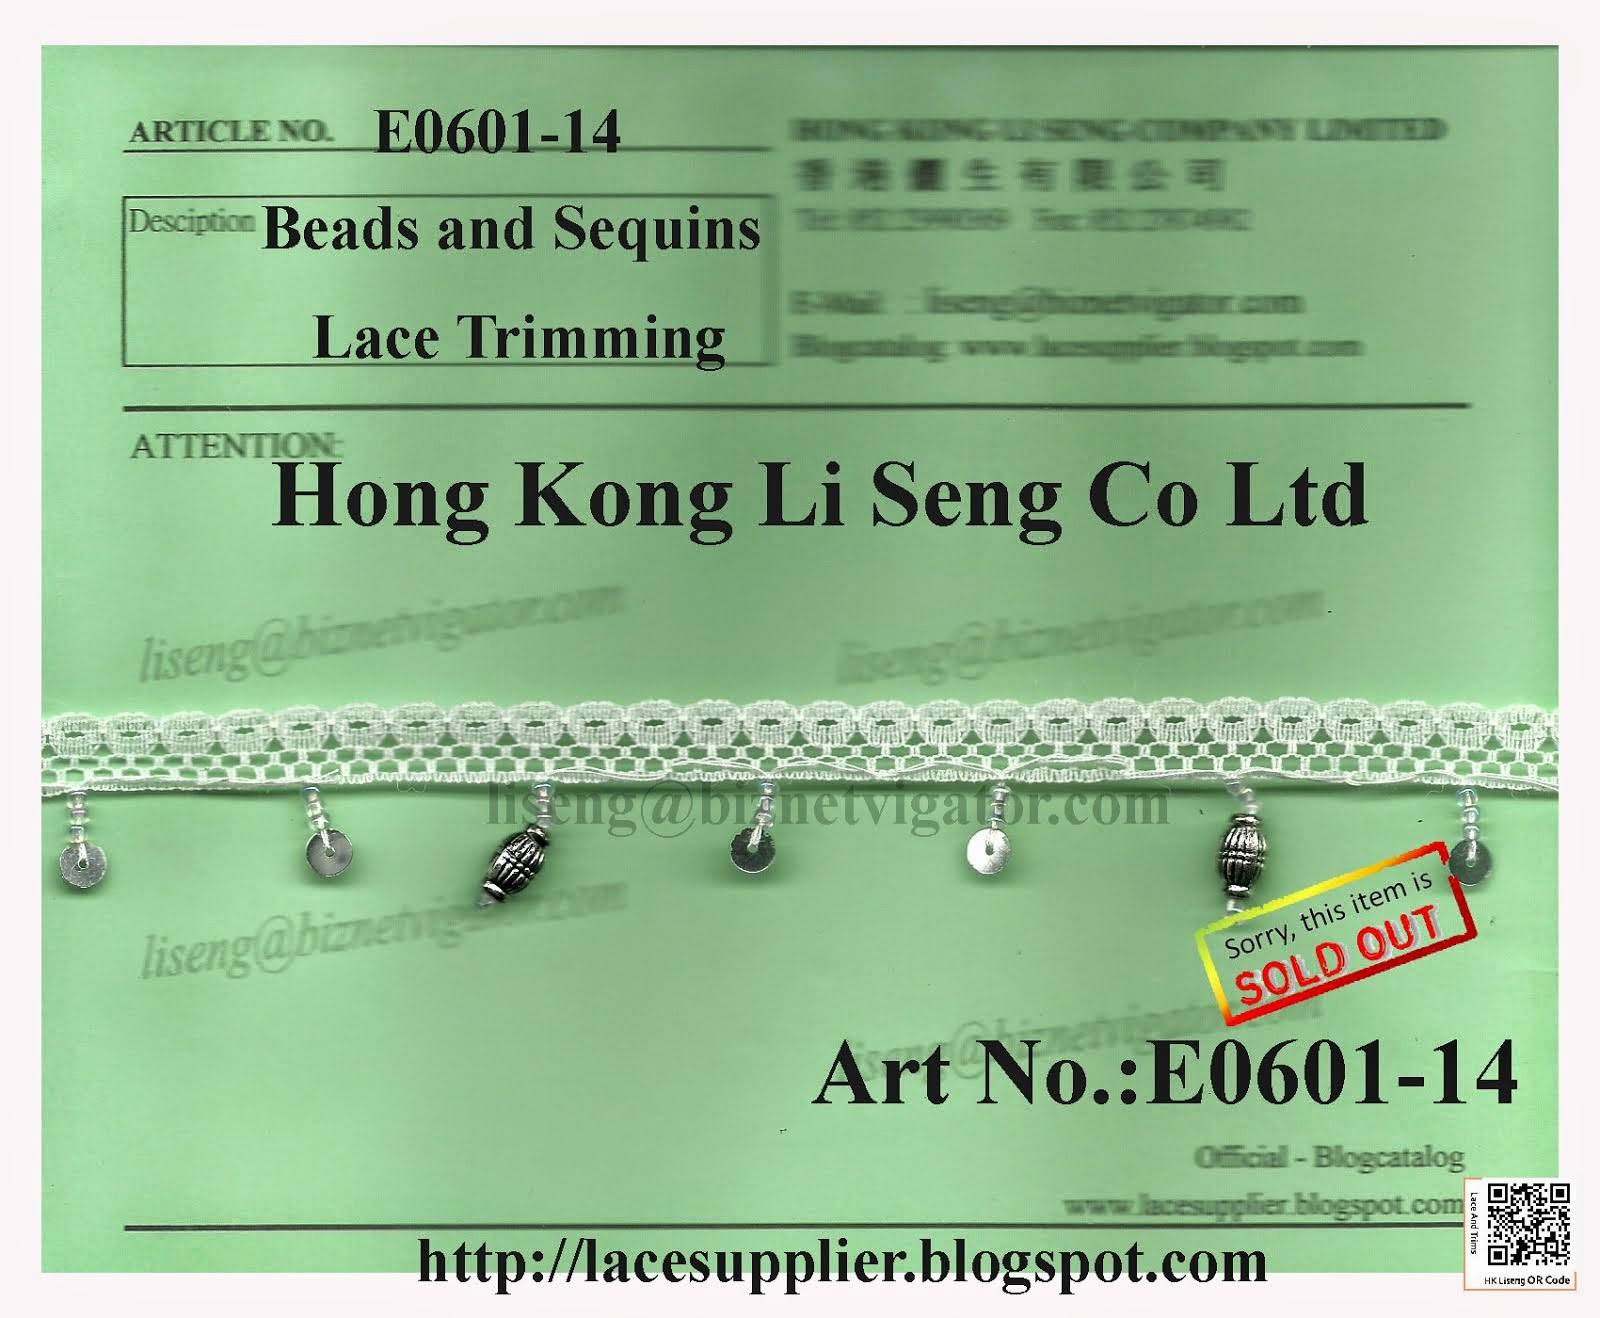 Beads and Sequins Lace Trimming Supplier - Hong Kong Li Seng Co Ltd